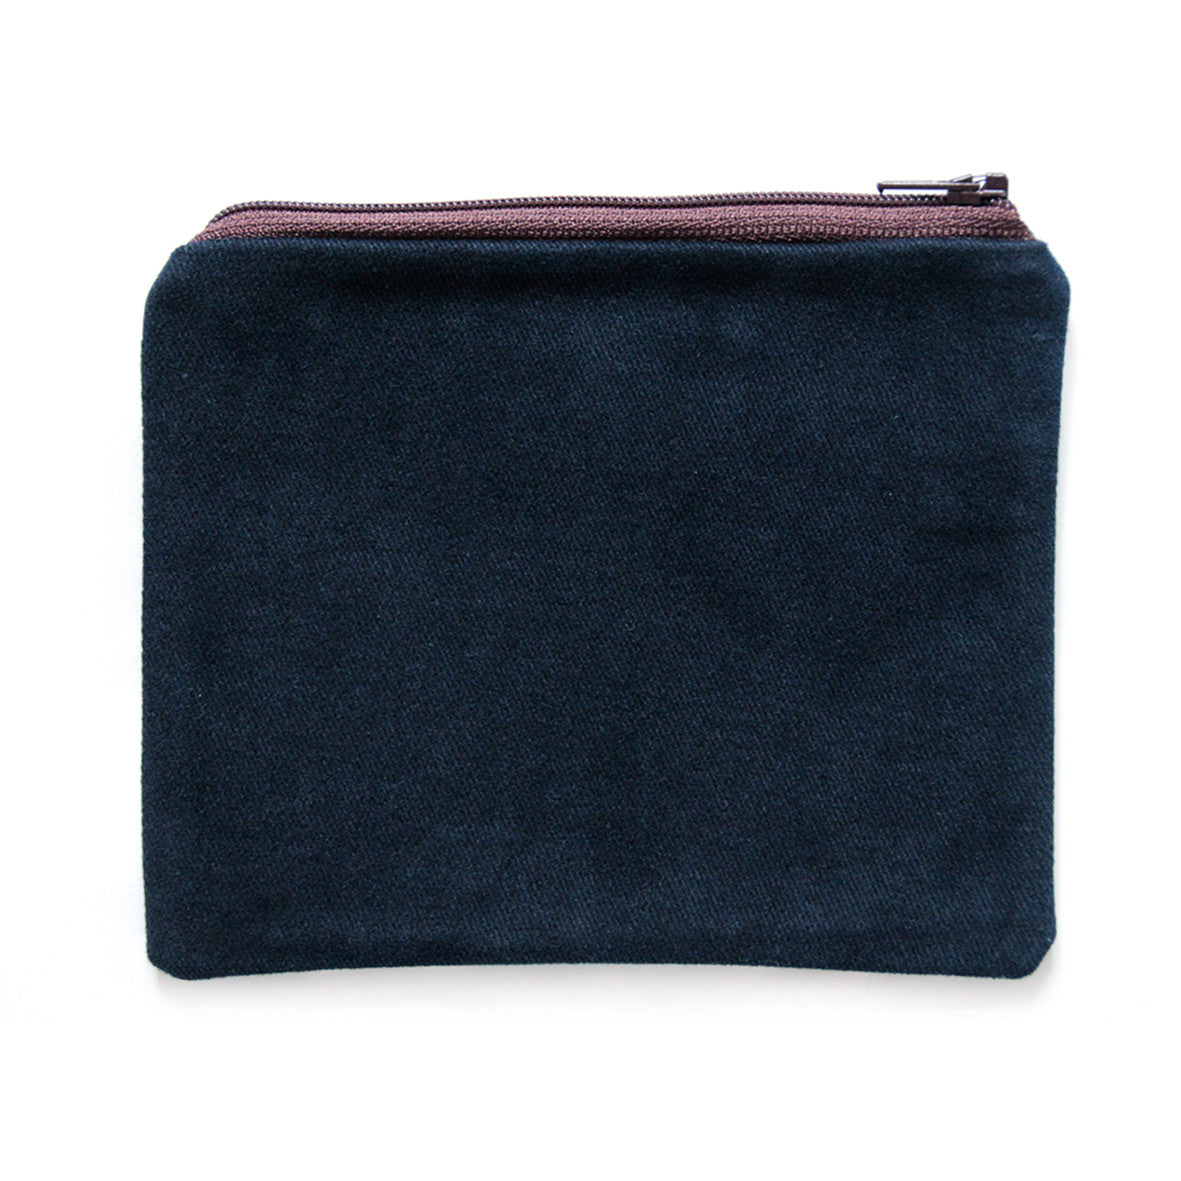 Persuit Zip Pouch